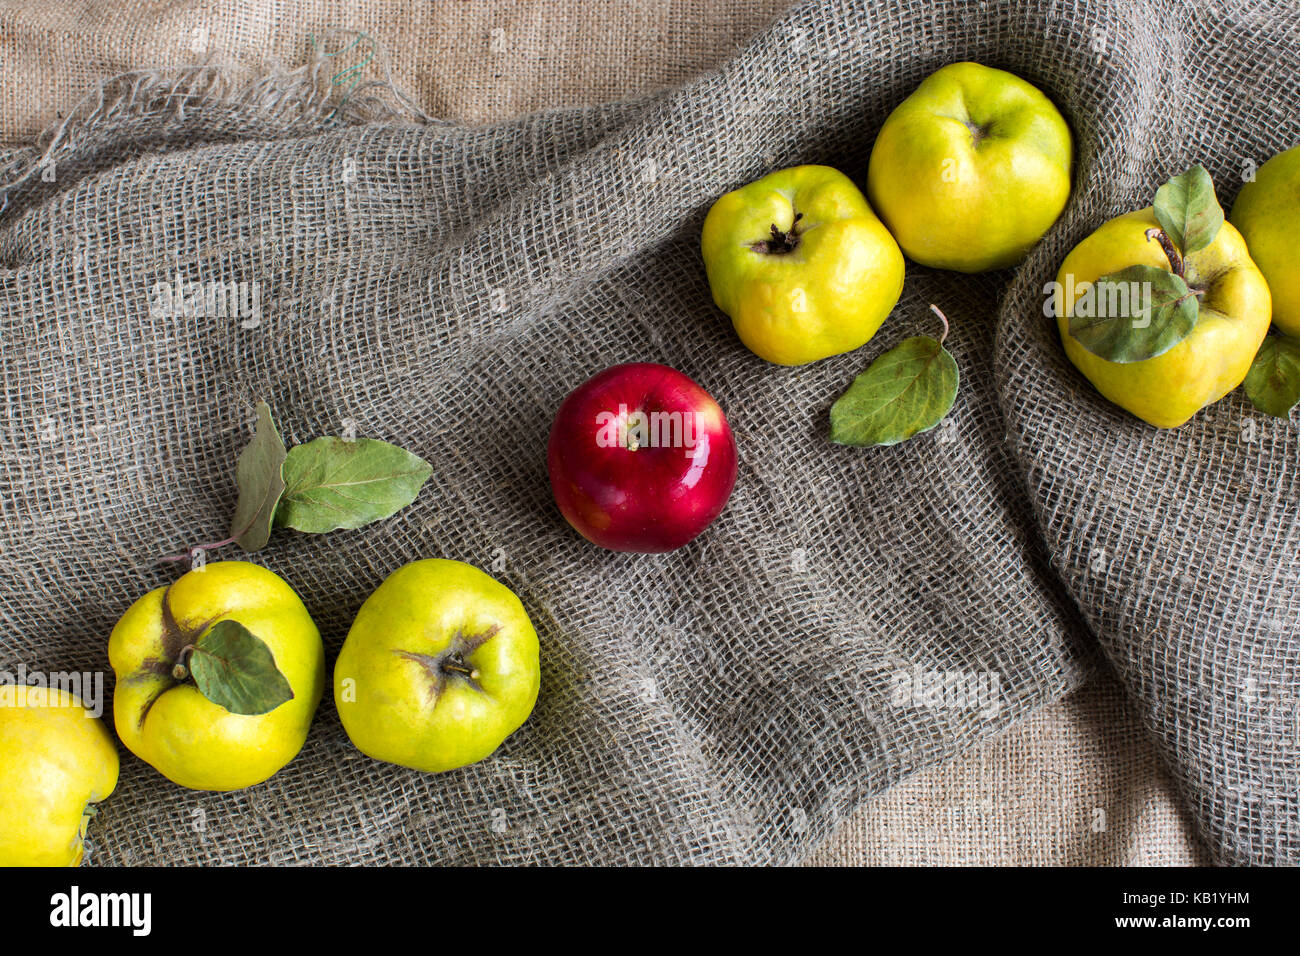 food, religion, healthy lifestyle concept. on the grey textured fabric among yellow quinces with green shades there - Stock Image